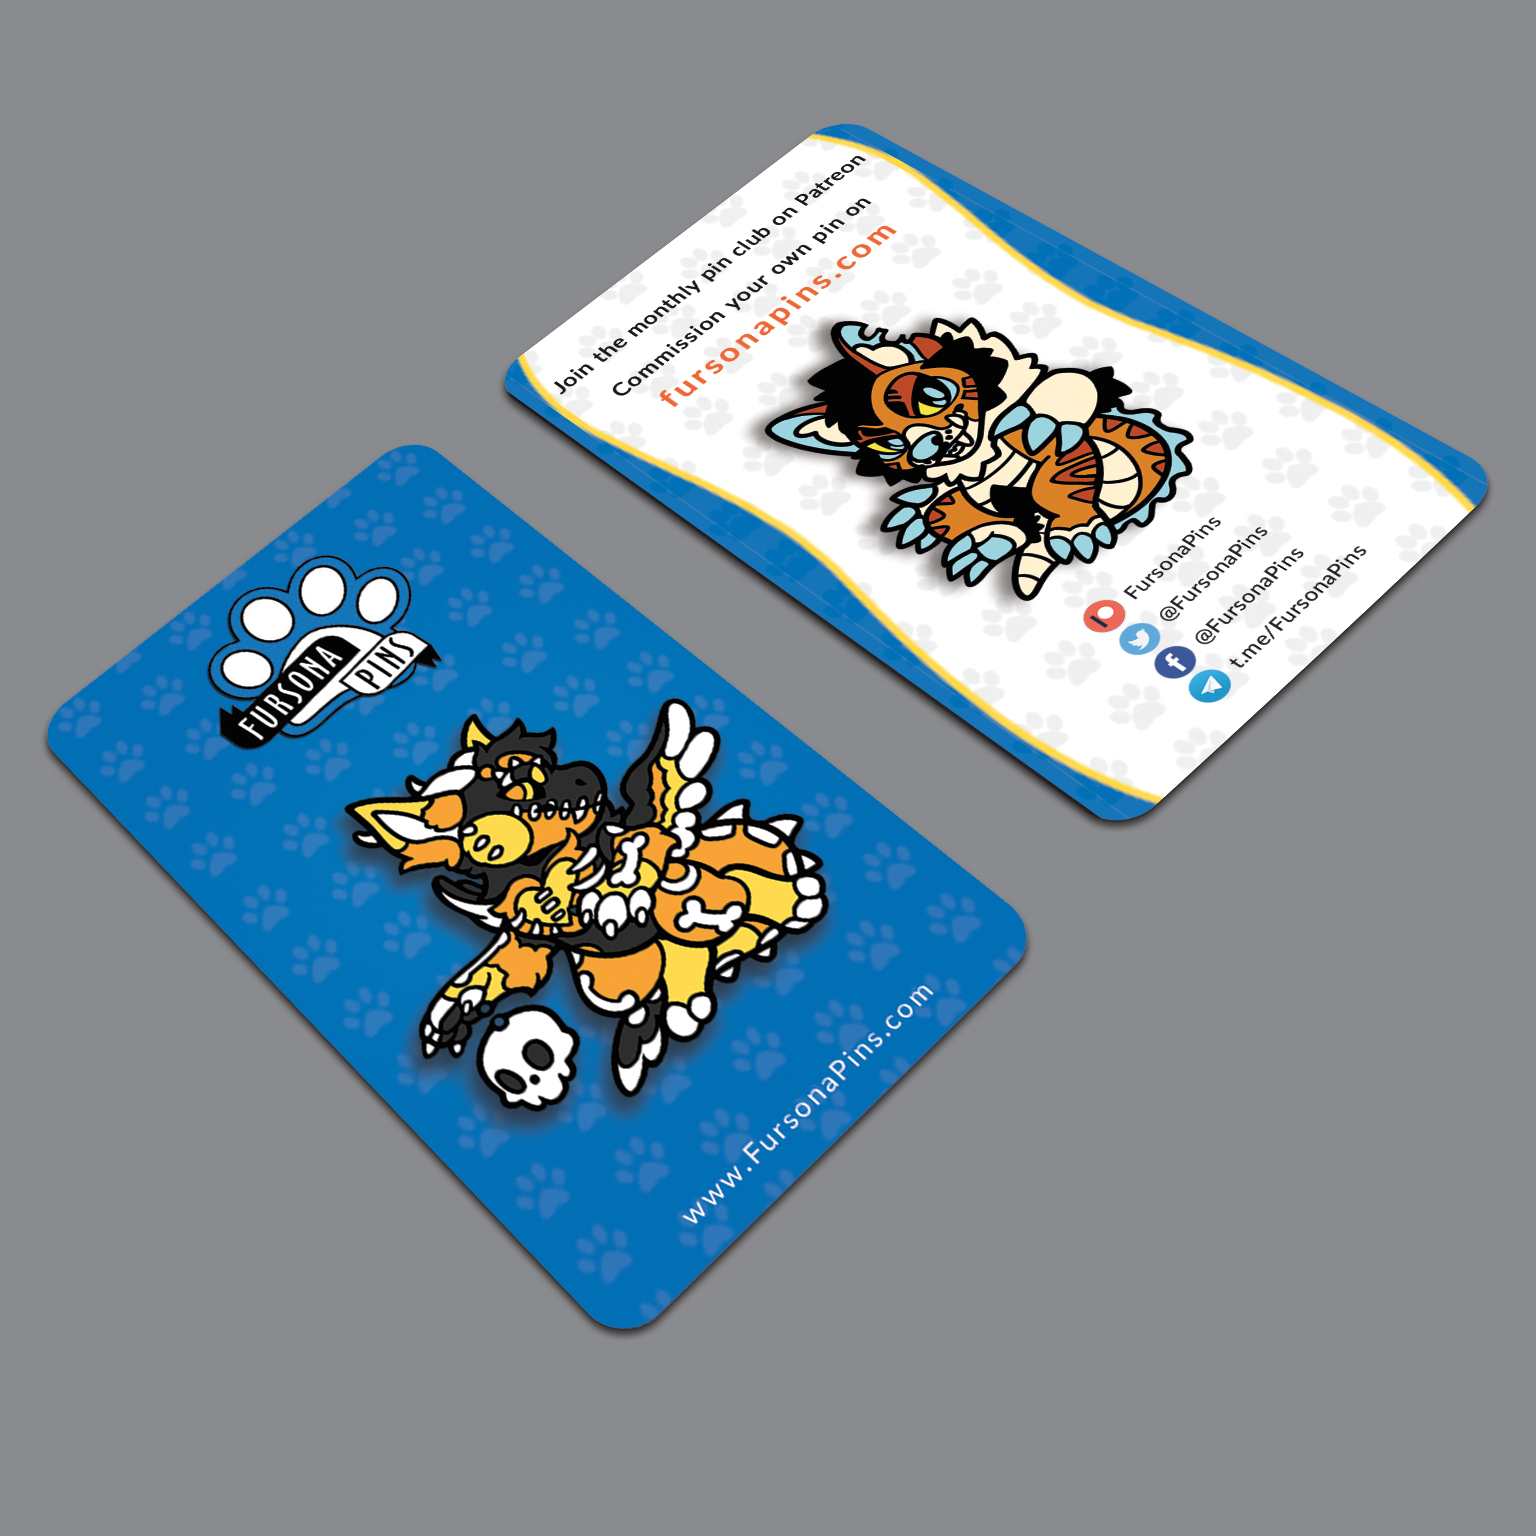 Fursona Pins Business Card